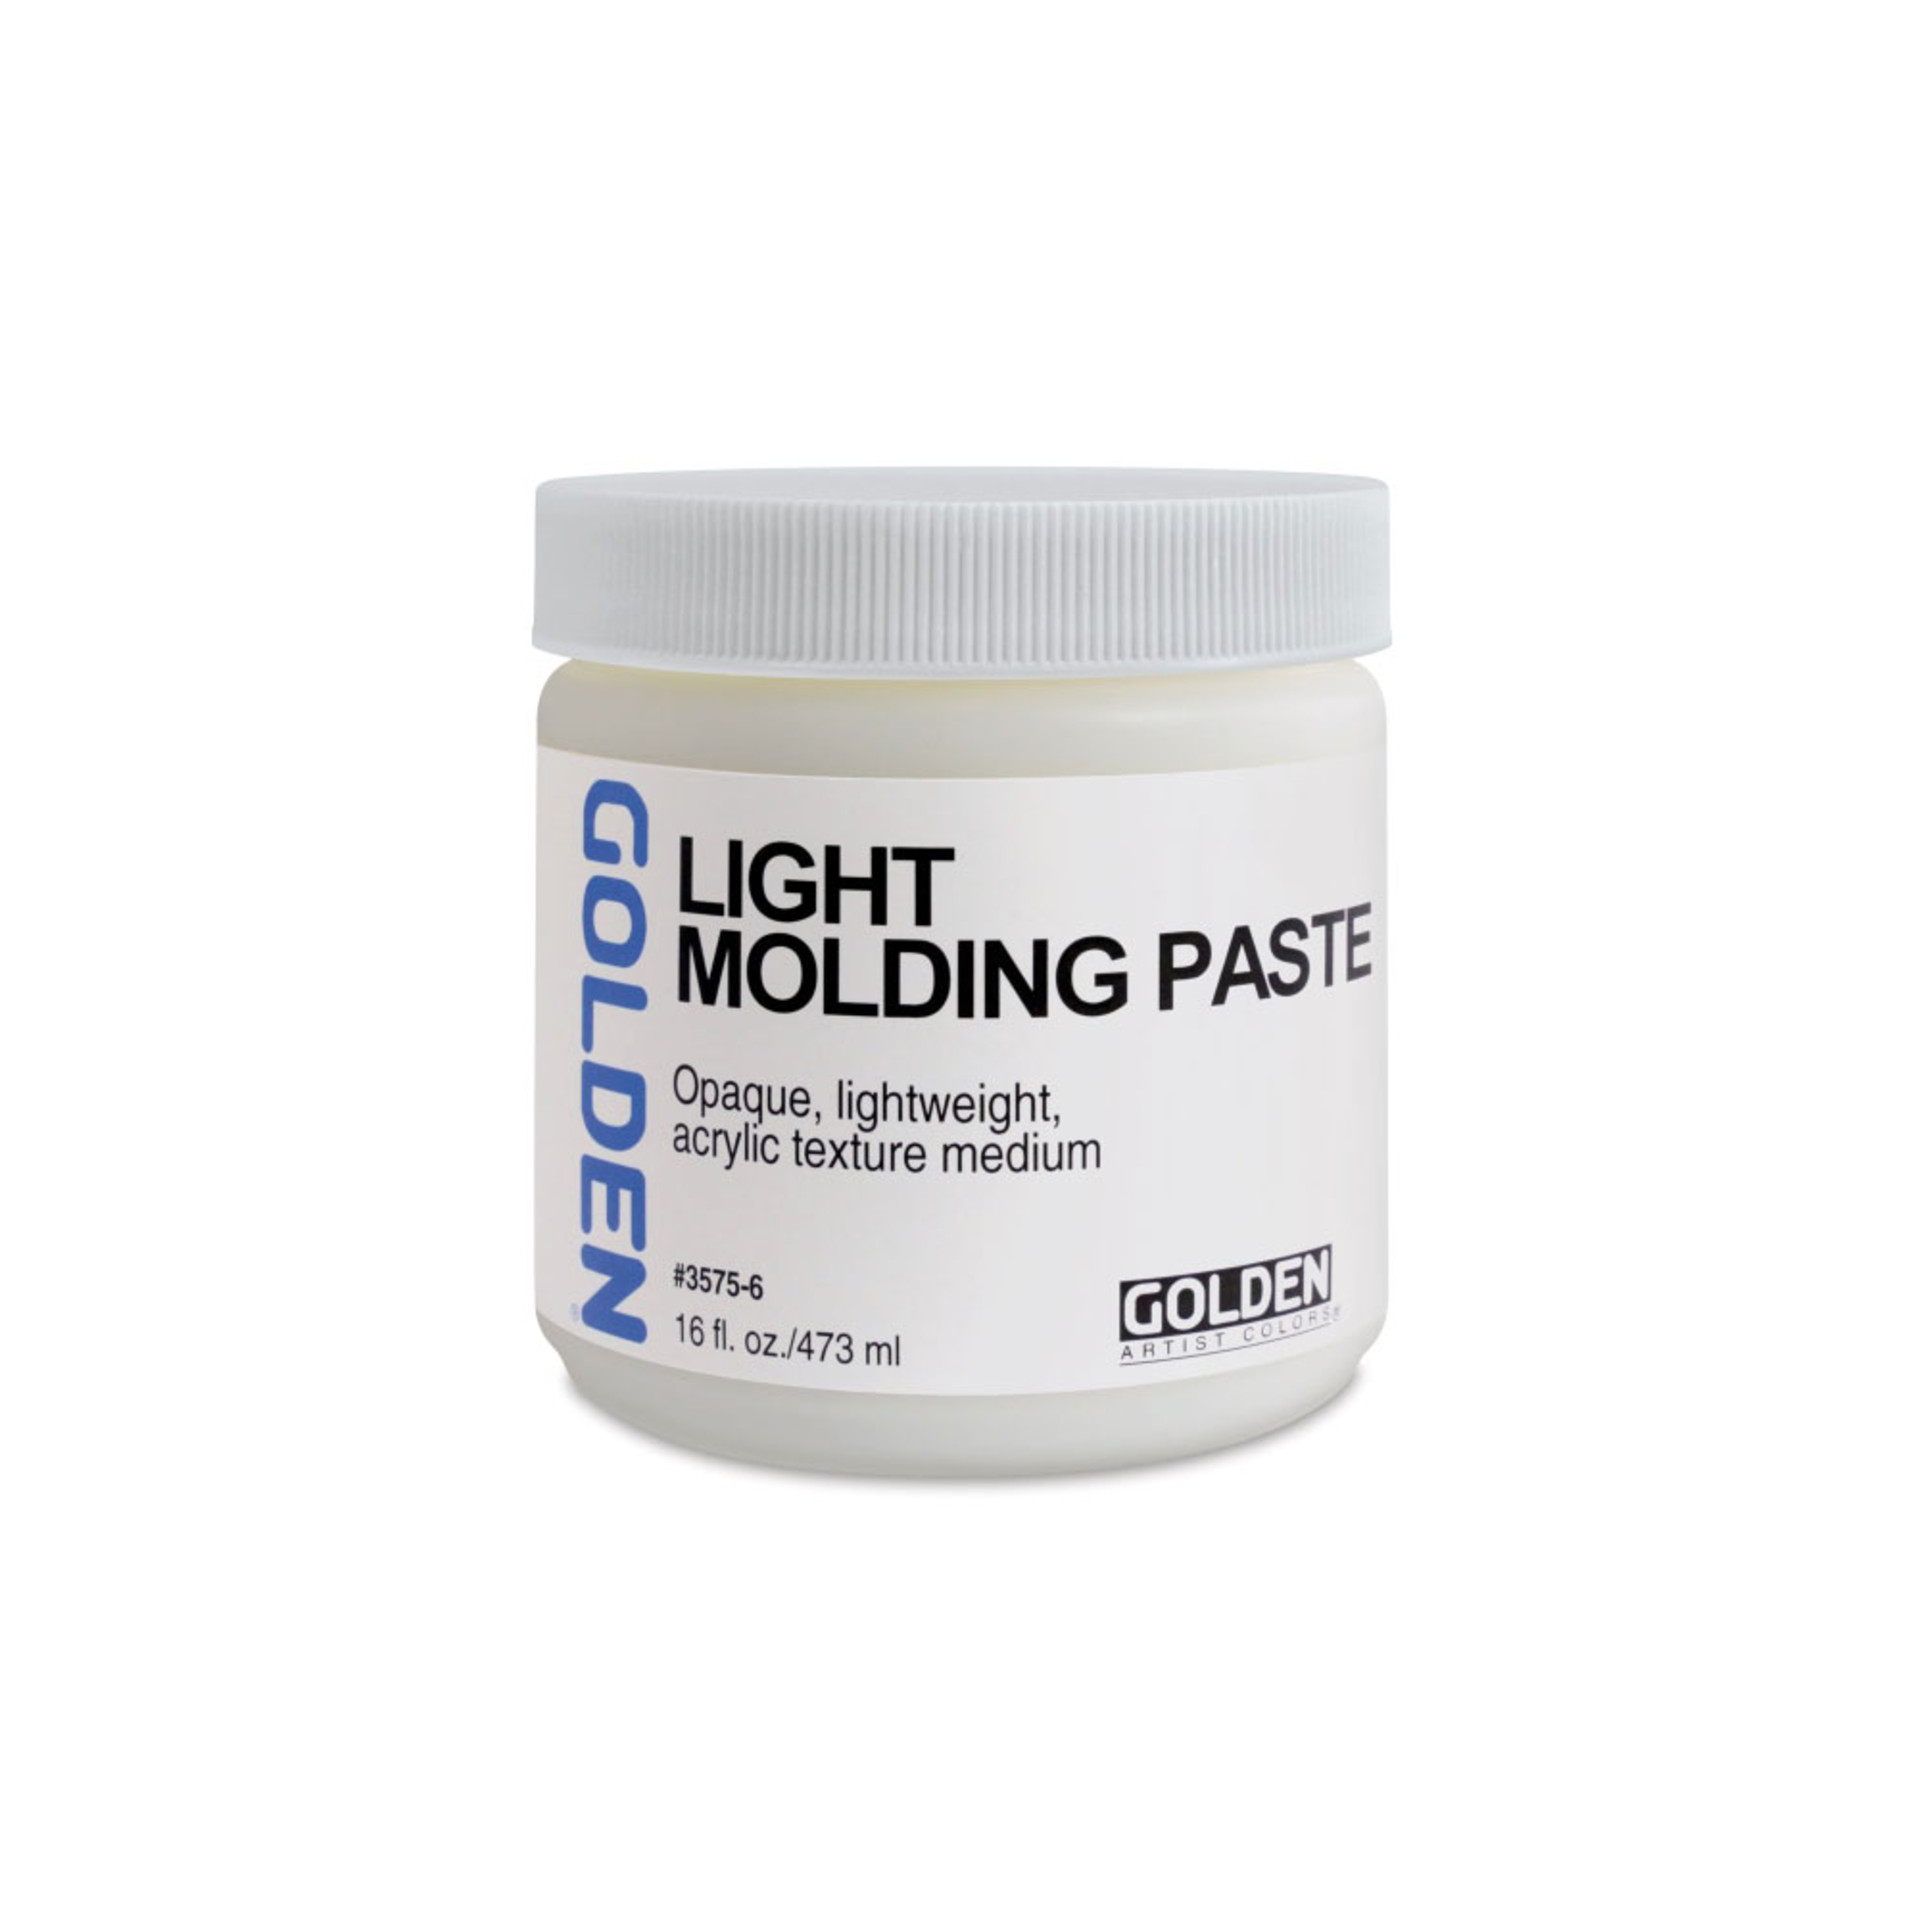 Golden Light Molding Paste Acrylic Medium 16oz